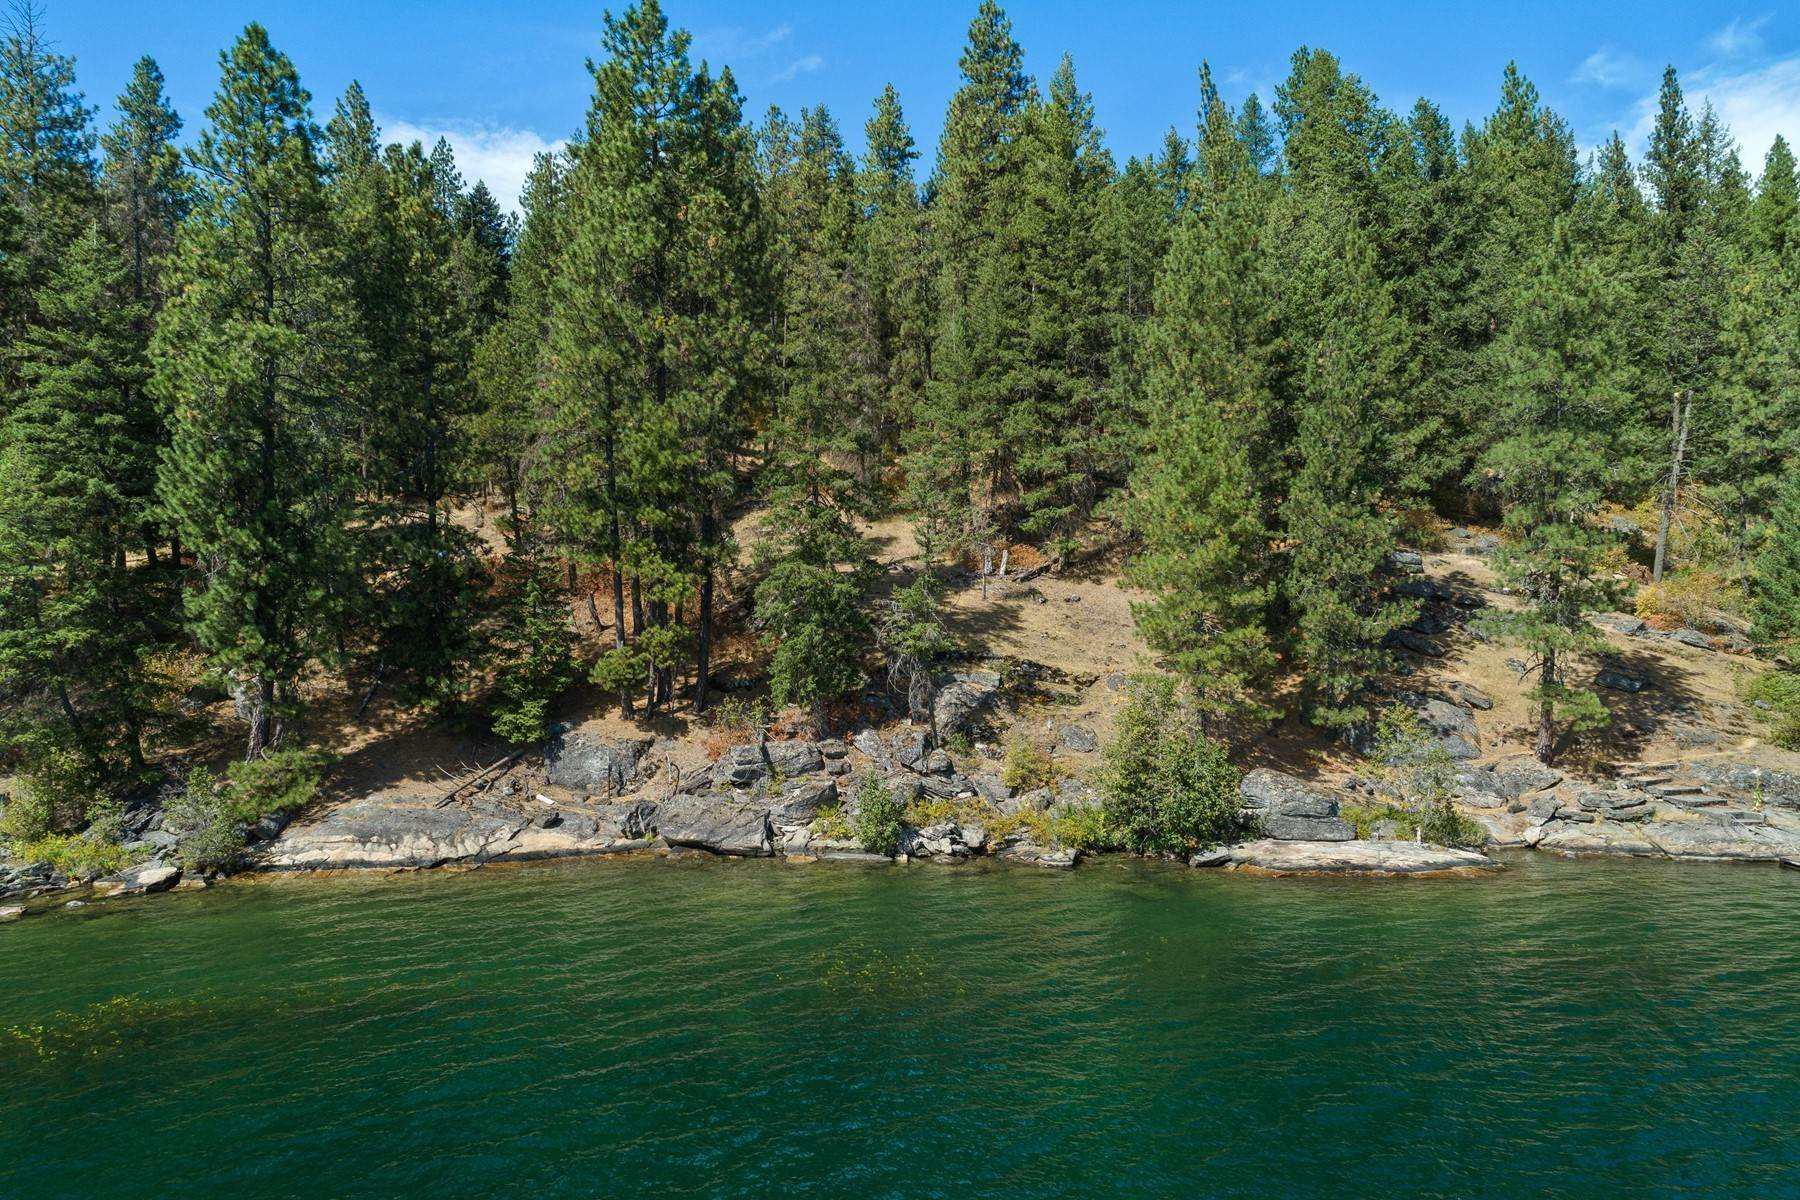 Land for Sale at Stunning Coeur d'Alene Lakefront Lot 5486 W Mica Shore Rd, Coeur D Alene, Idaho, 83814 United States